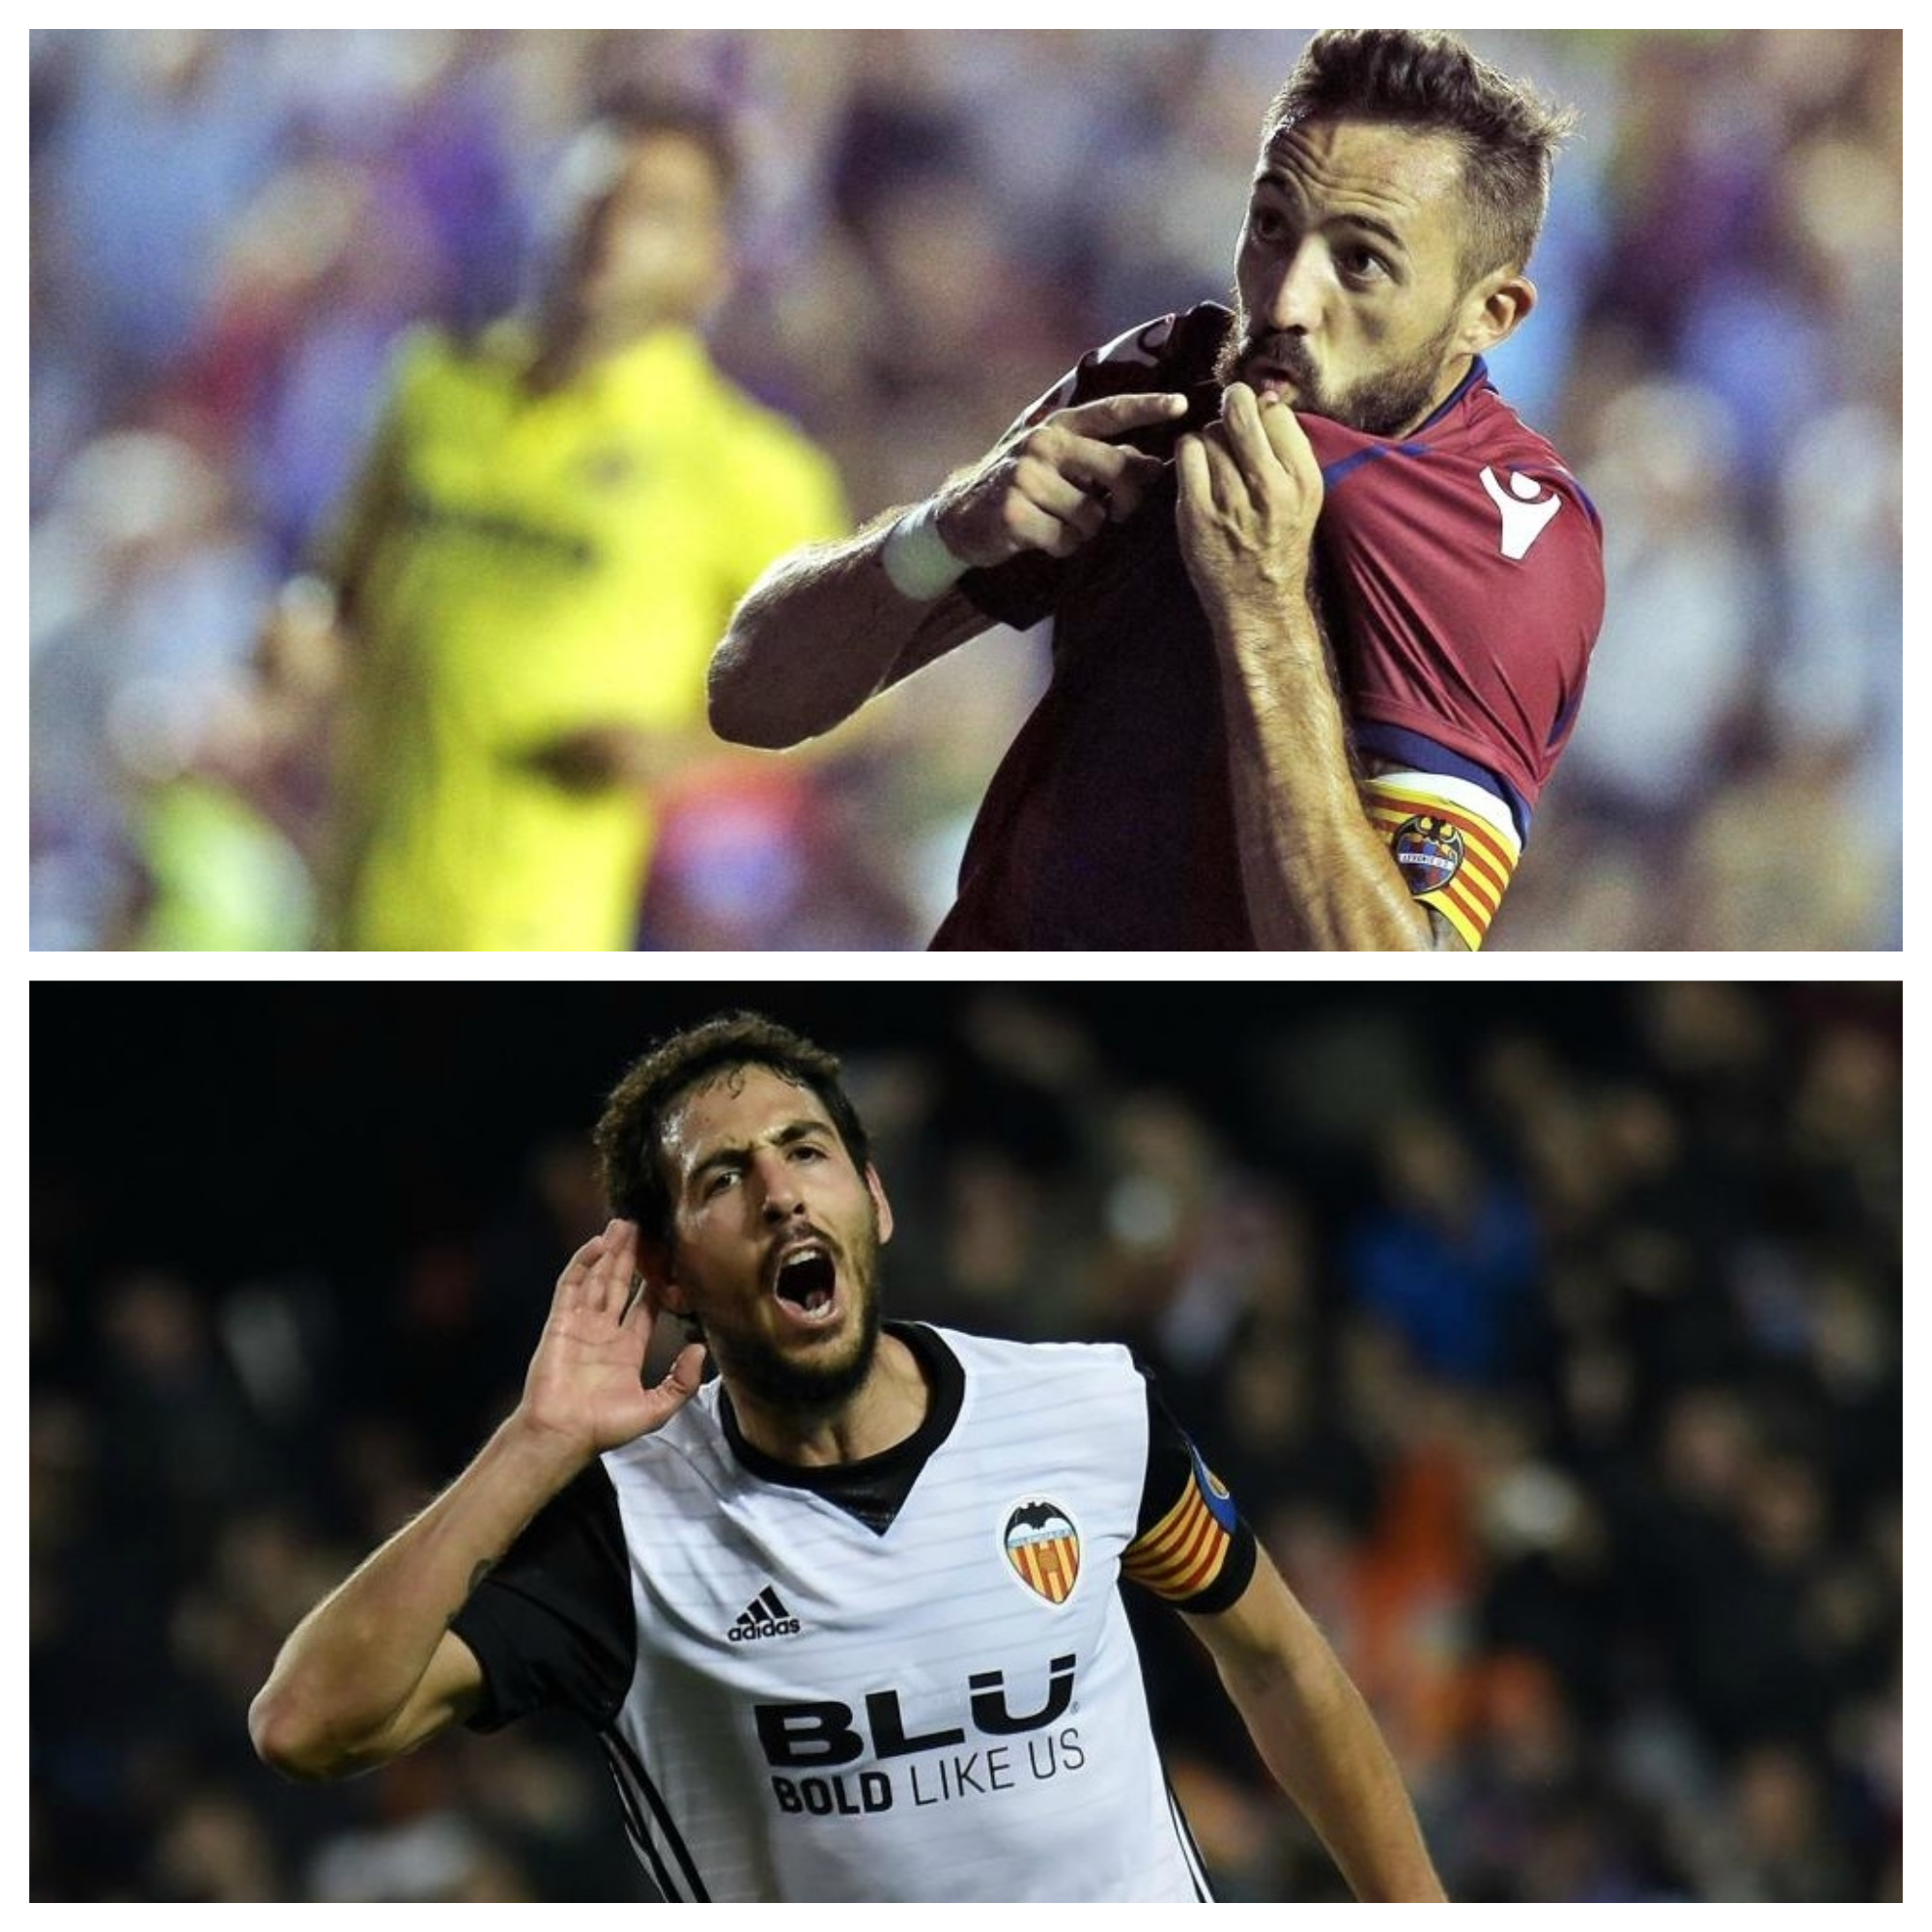 The illusion is installed on the two teams Valencia